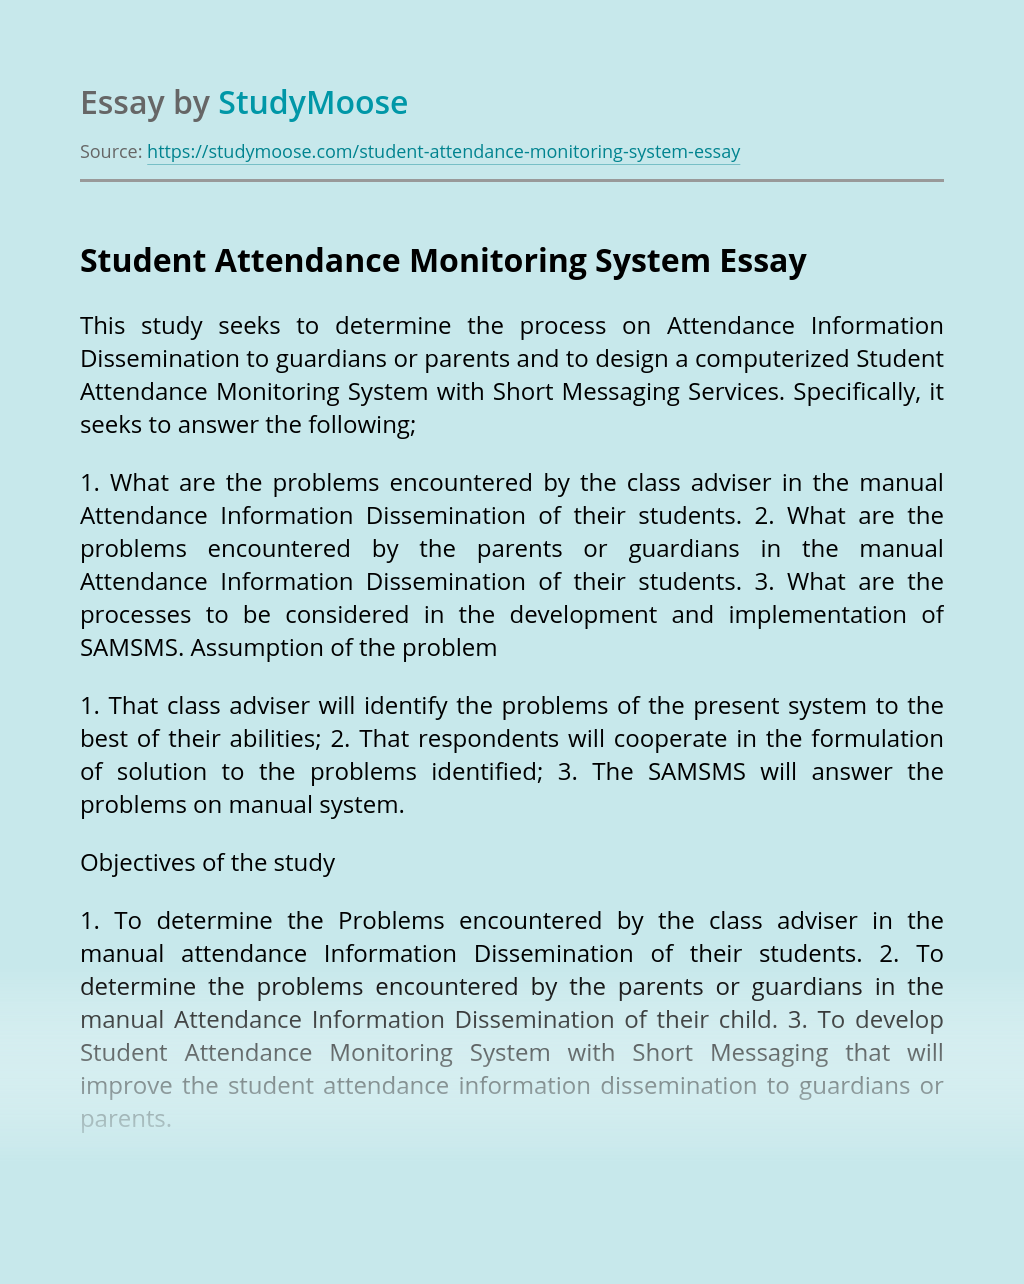 Student Attendance Monitoring System